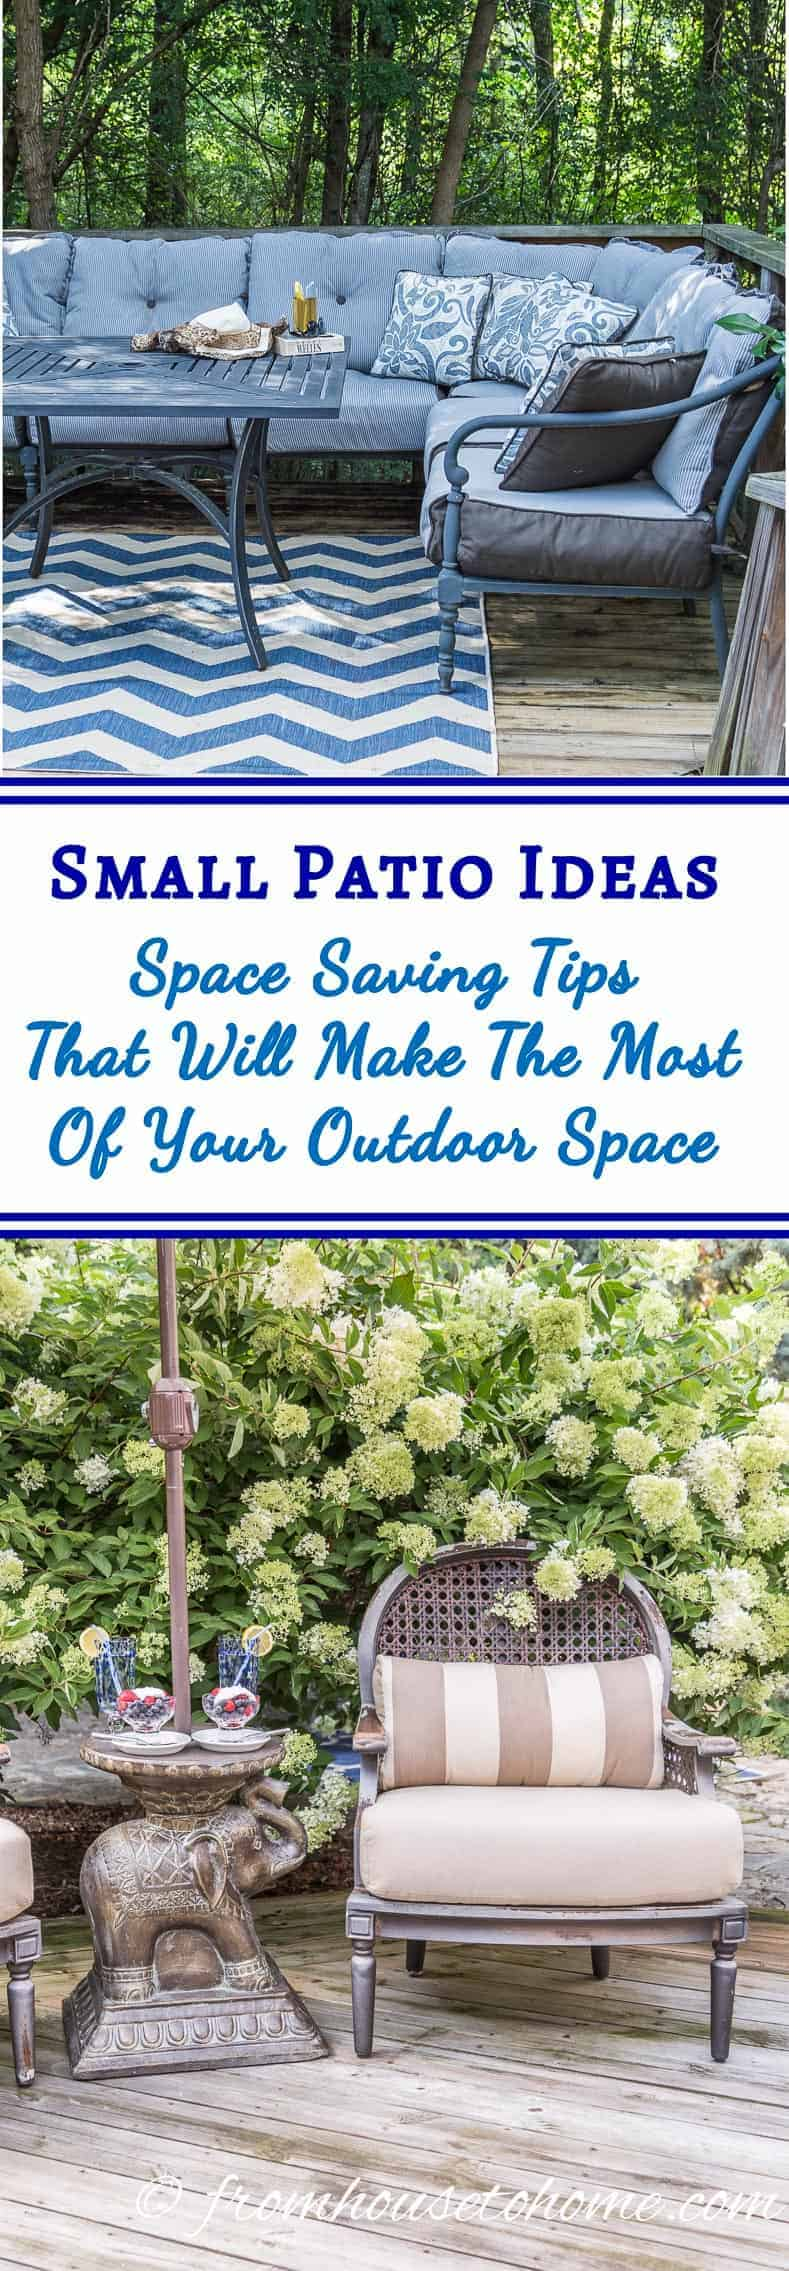 Small Patio Ideas | Just because you have a tiny deck doesn't mean you can't enjoy outdoor living. Use these space-saving tips and small patio ideas to create an outdoor oasis out of whatever space you have.